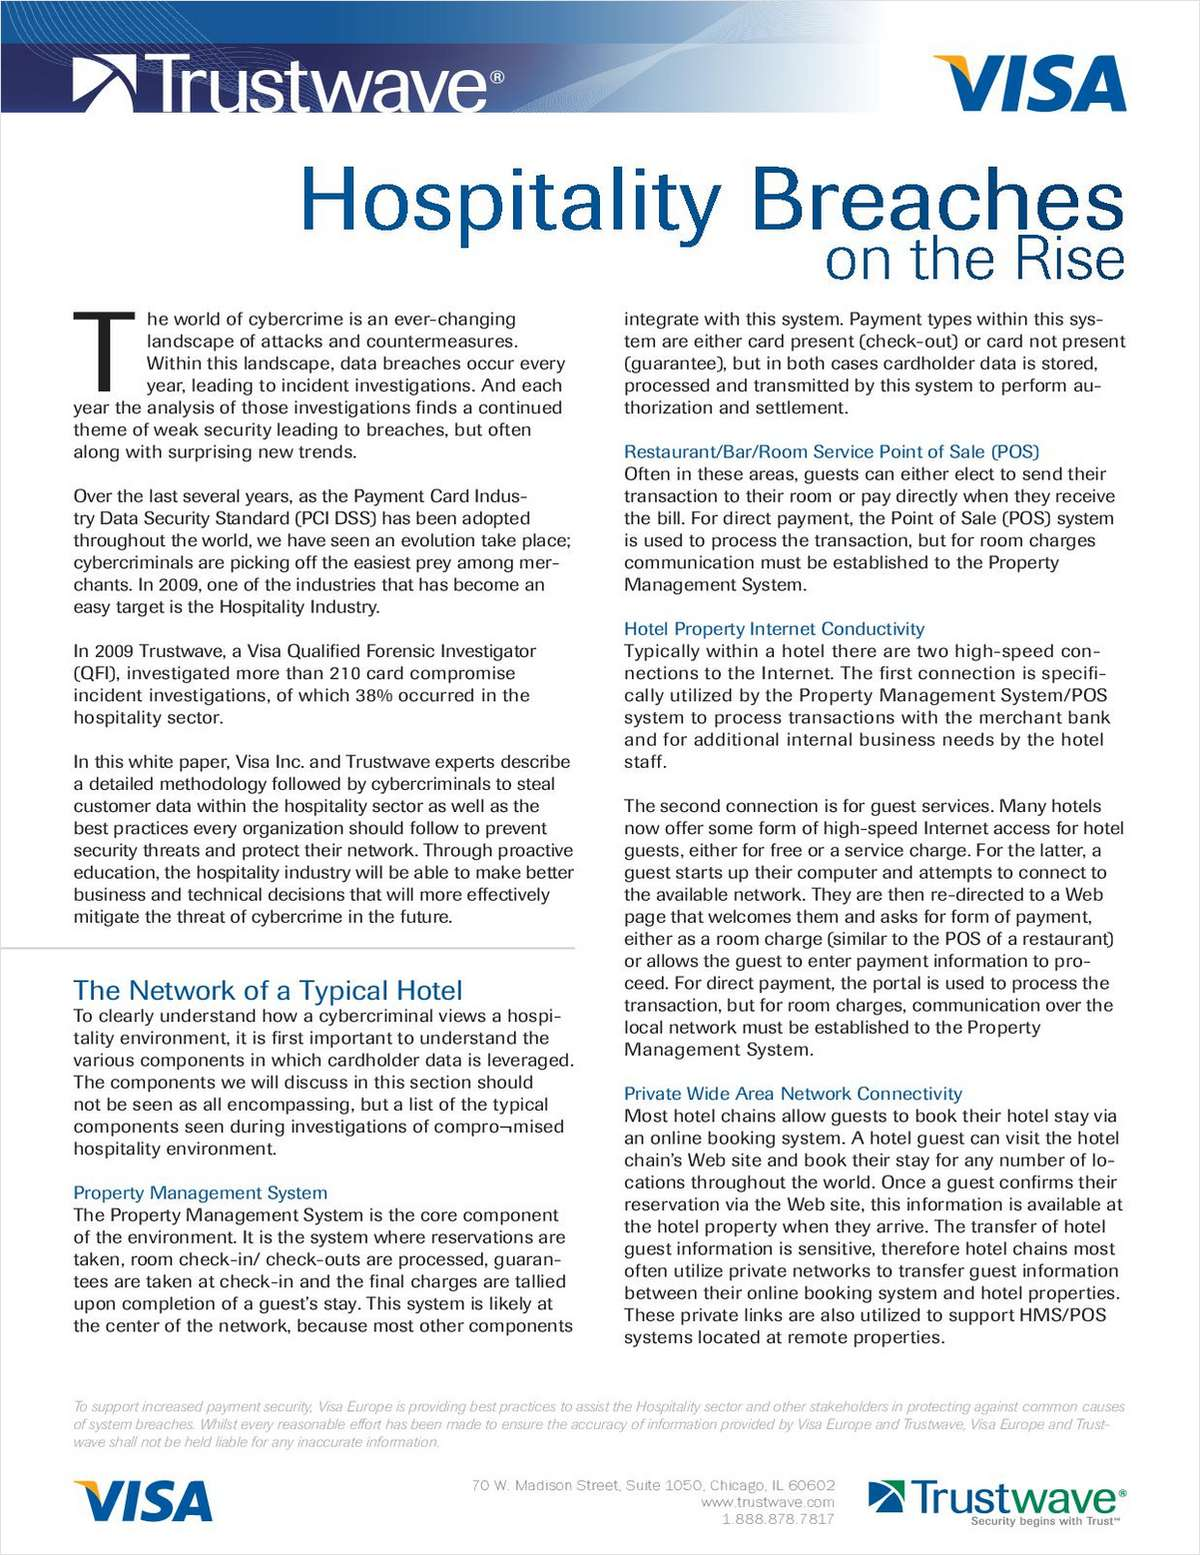 Hospitality Breaches on the Rise